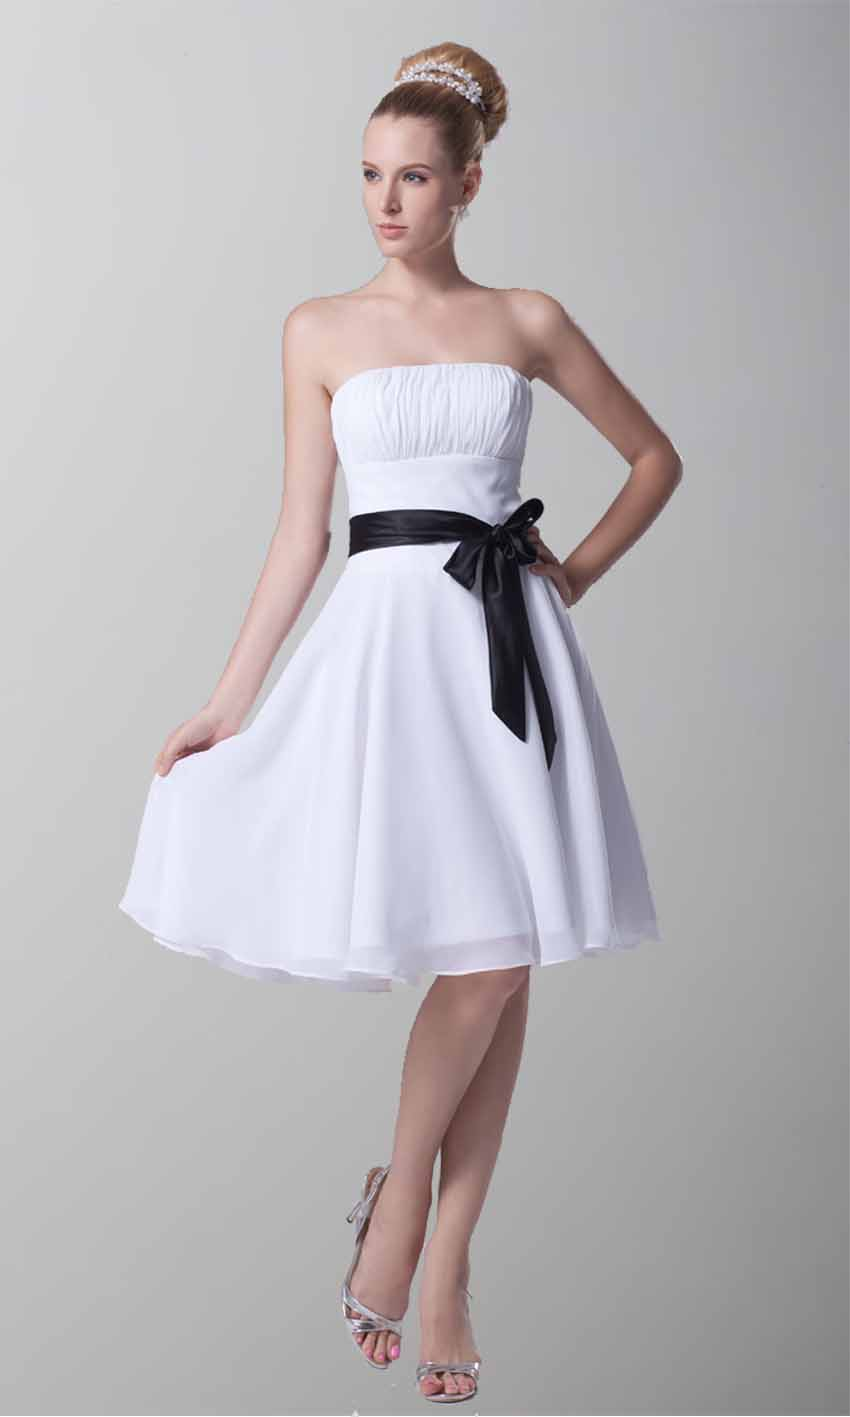 Look stylish in our fashion white dresses. Be cool and comfortable during all the time when wearing our cheap women's white dresses.